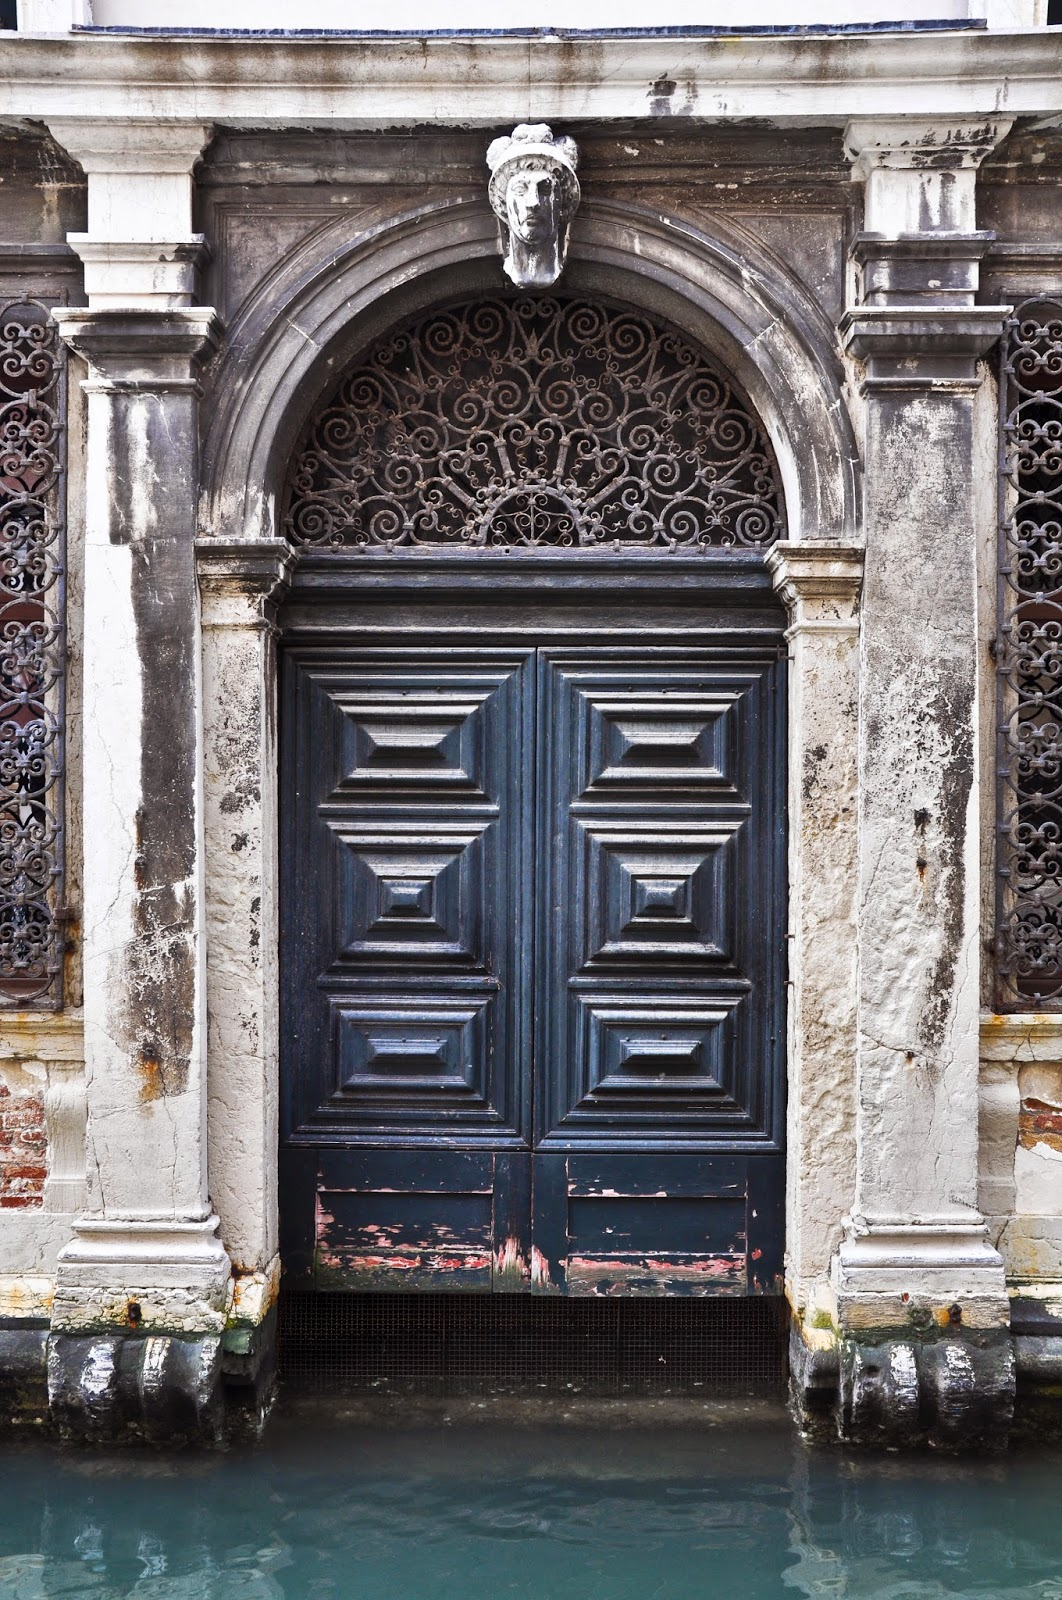 A door leading to a canal in Venice